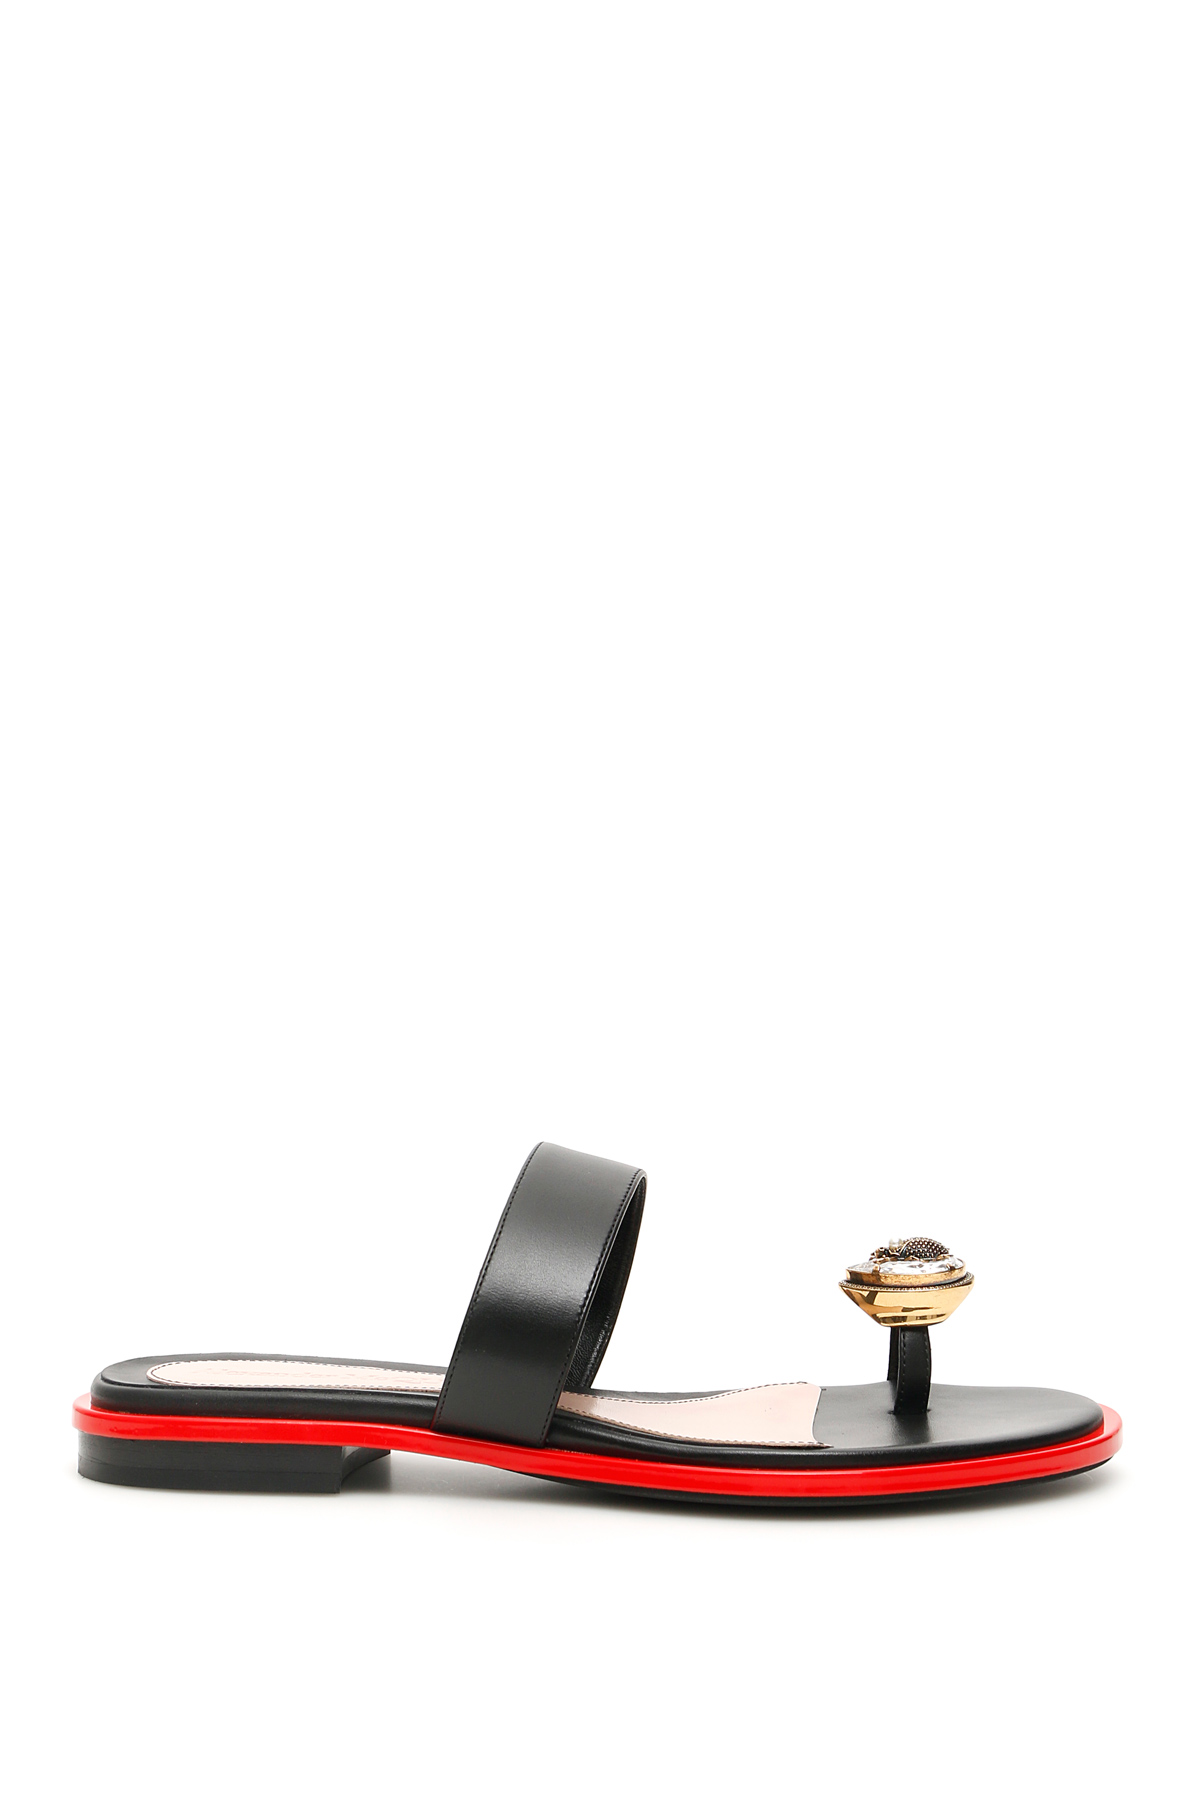 ALEXANDER MCQUEEN FLAT SANDALS WITH JEWEL 37 Black, Red Leather